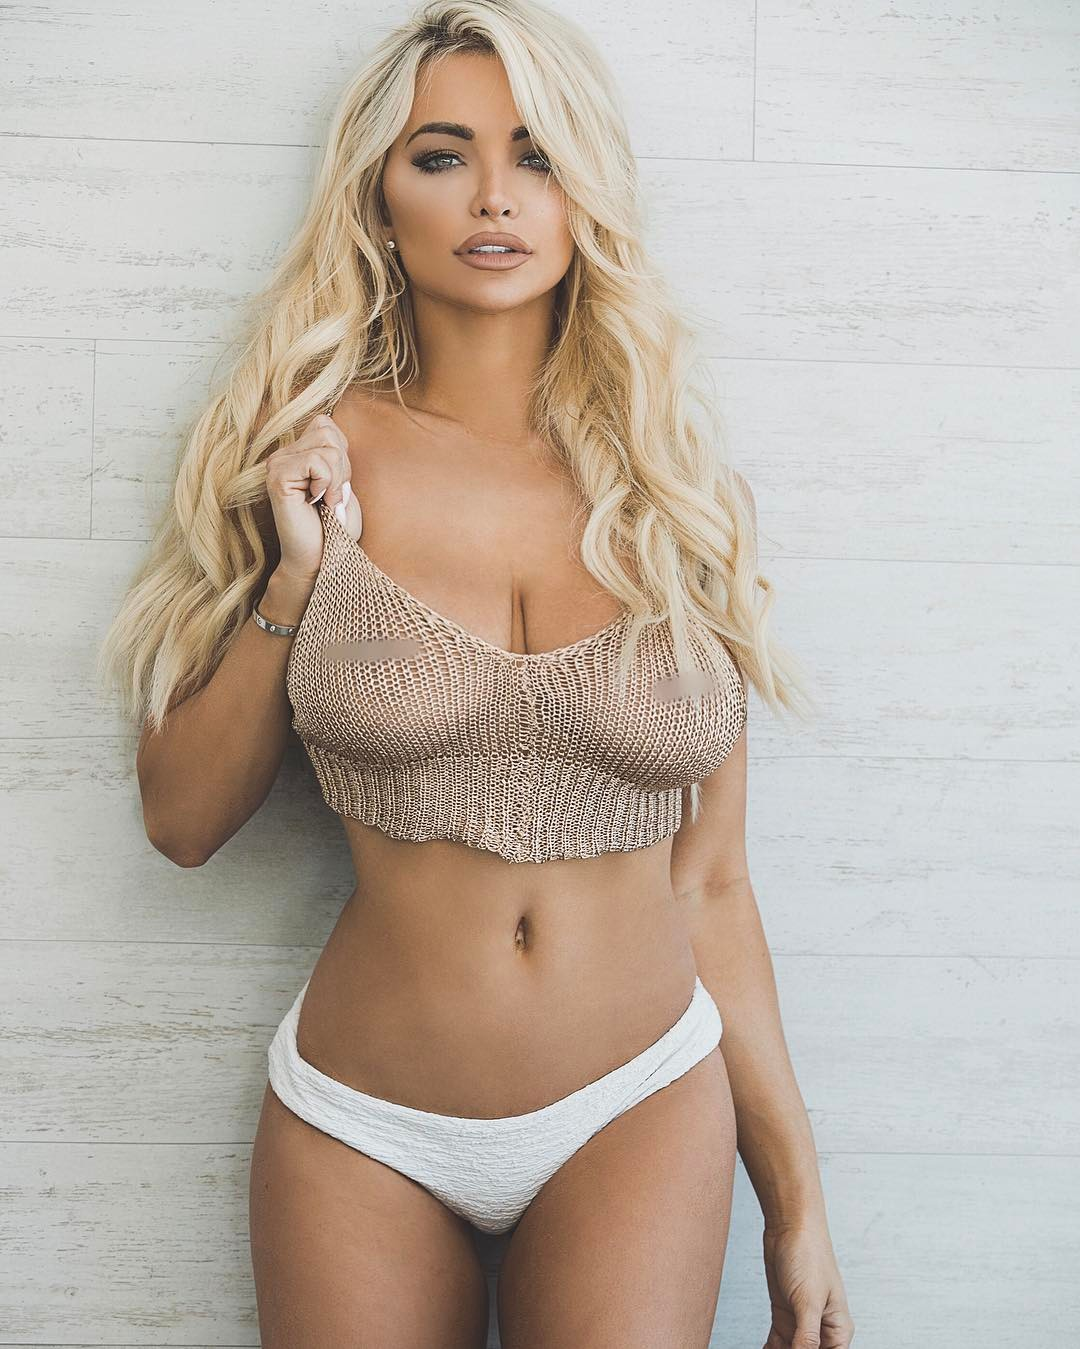 Lindsey Pelas Wiki, Profile and Biography